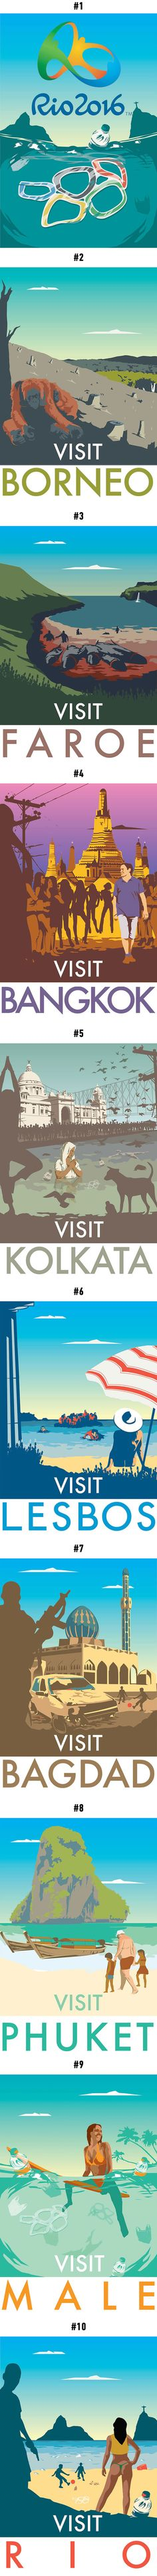 Honest Travelling Posters. Will You Still Travel To These Cities? - 9GAG